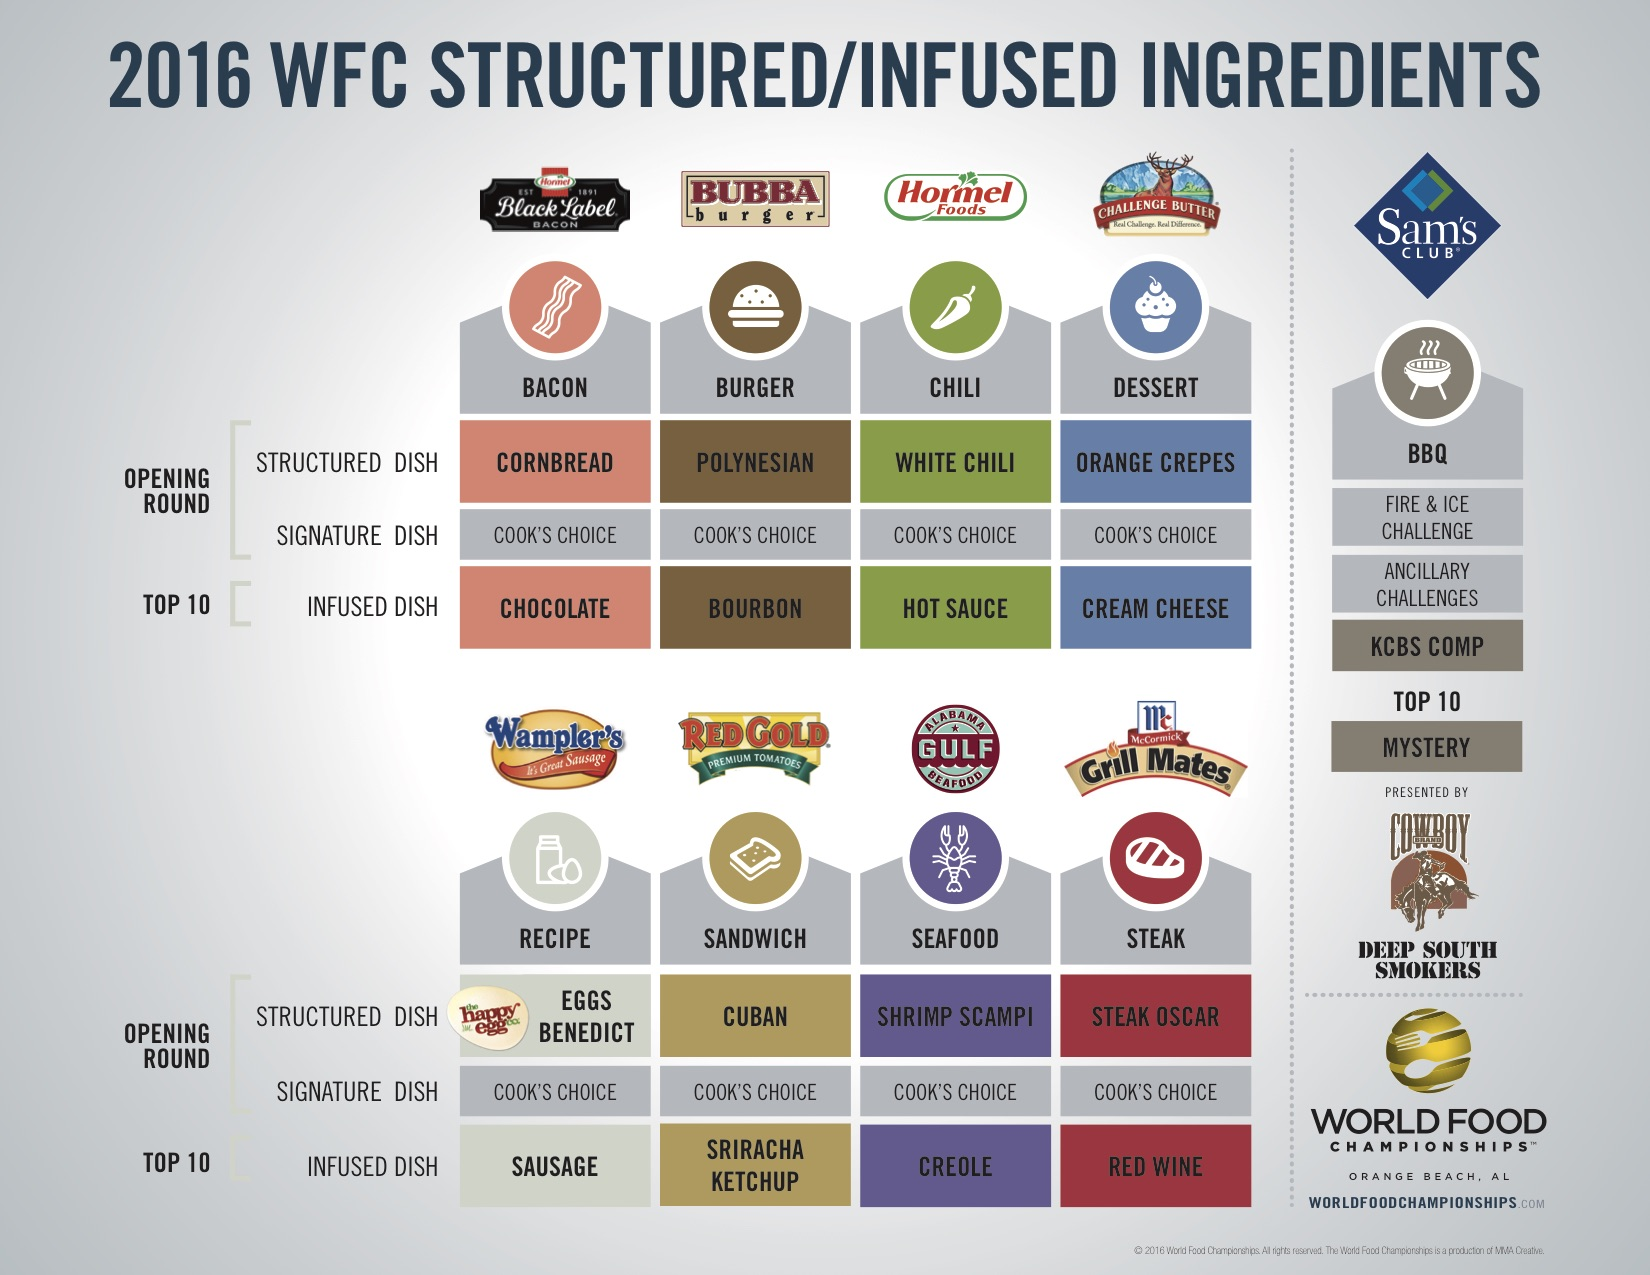 Strucutred Build/Infused Ingredients 2016 Graphic -- 2016-wfc-structured-infused-chart-vfinal.jpg